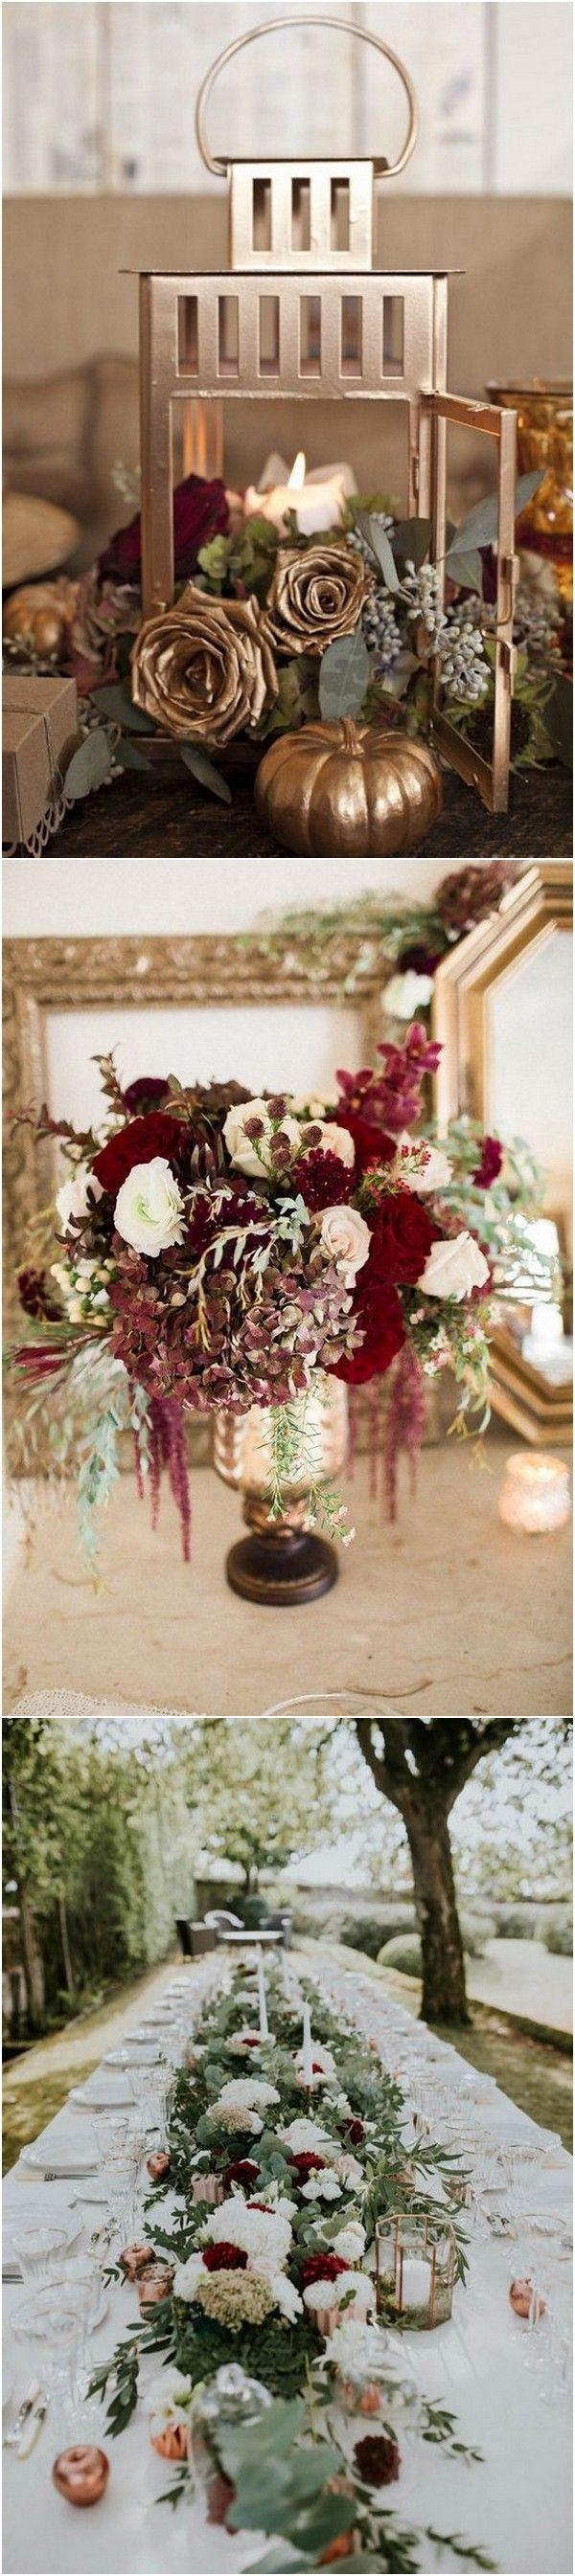 Fall wedding decor 2018  Top  Burgundy Wedding Centerpieces for Fall   Page  of